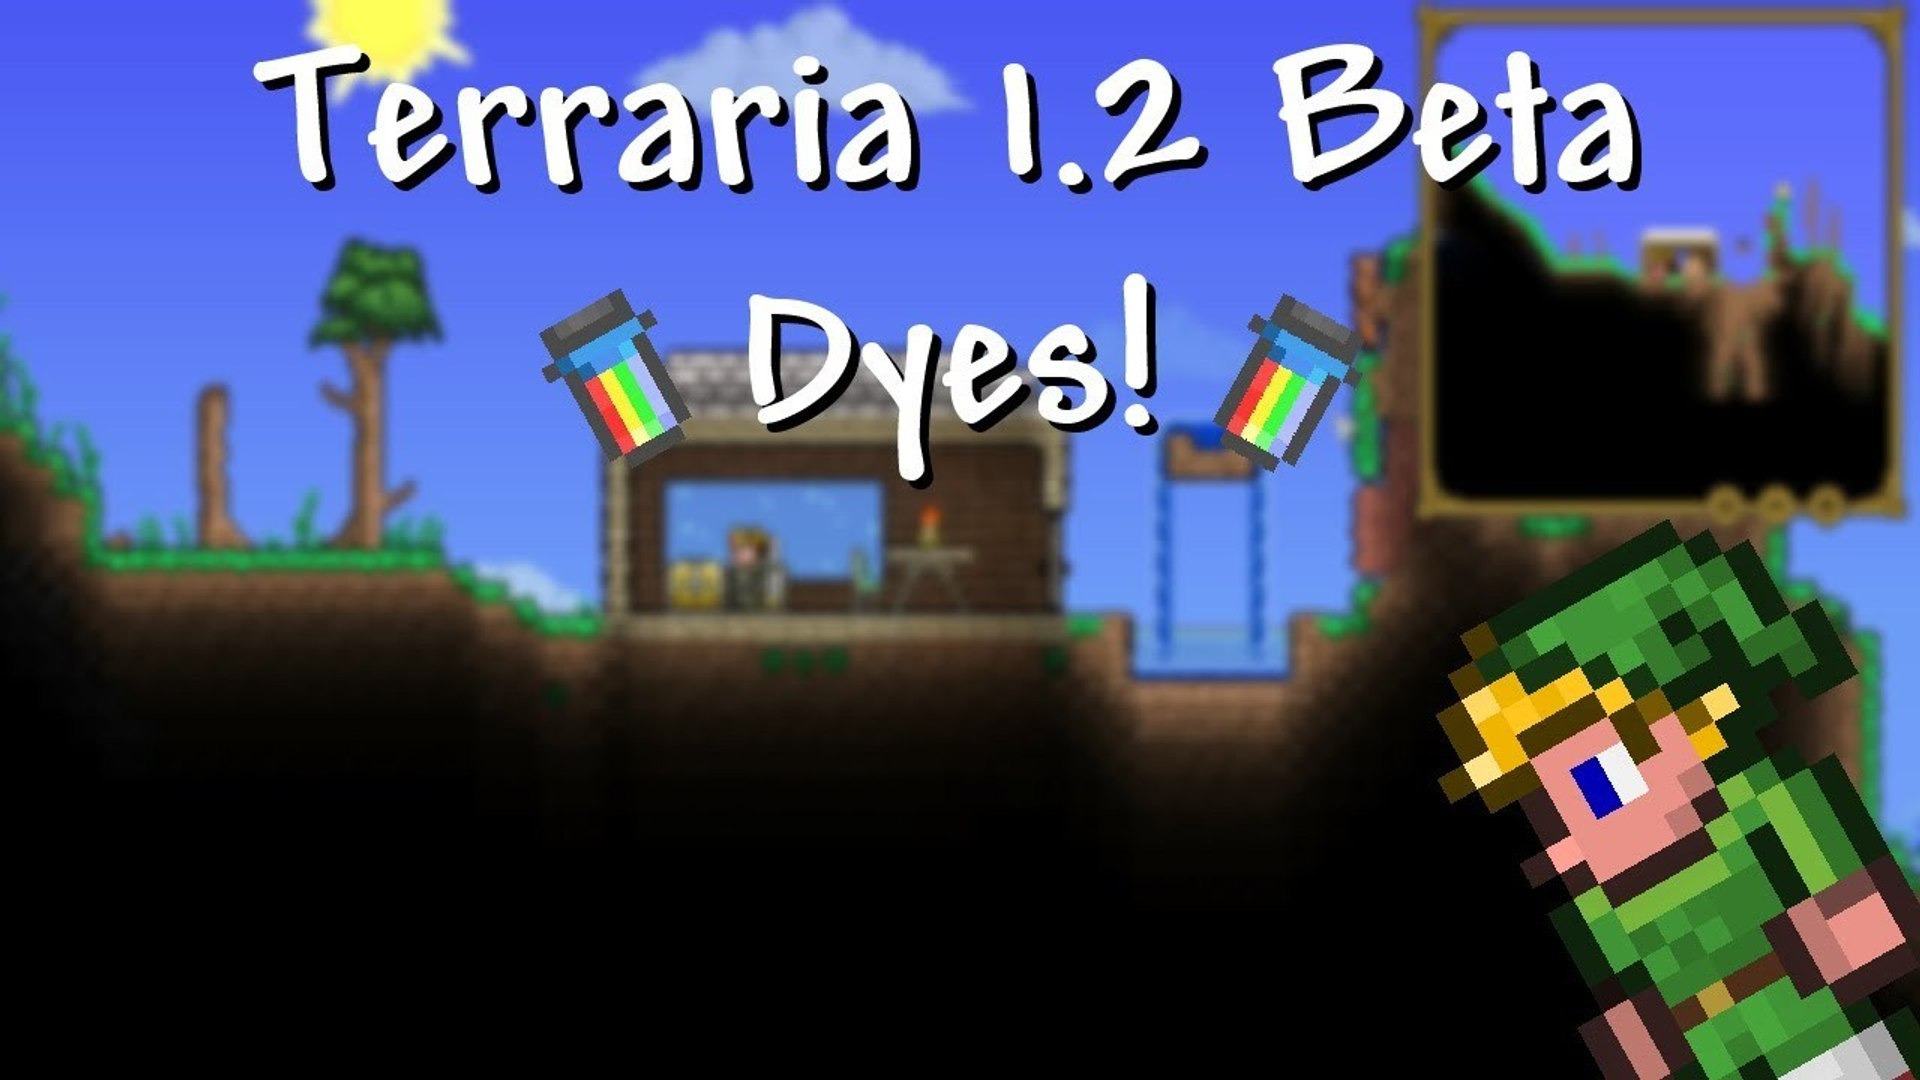 Terraria 1 2 - Beta Gameplay! Dyes w/ Hero and Yrimir Styles! EXCLUSIVE